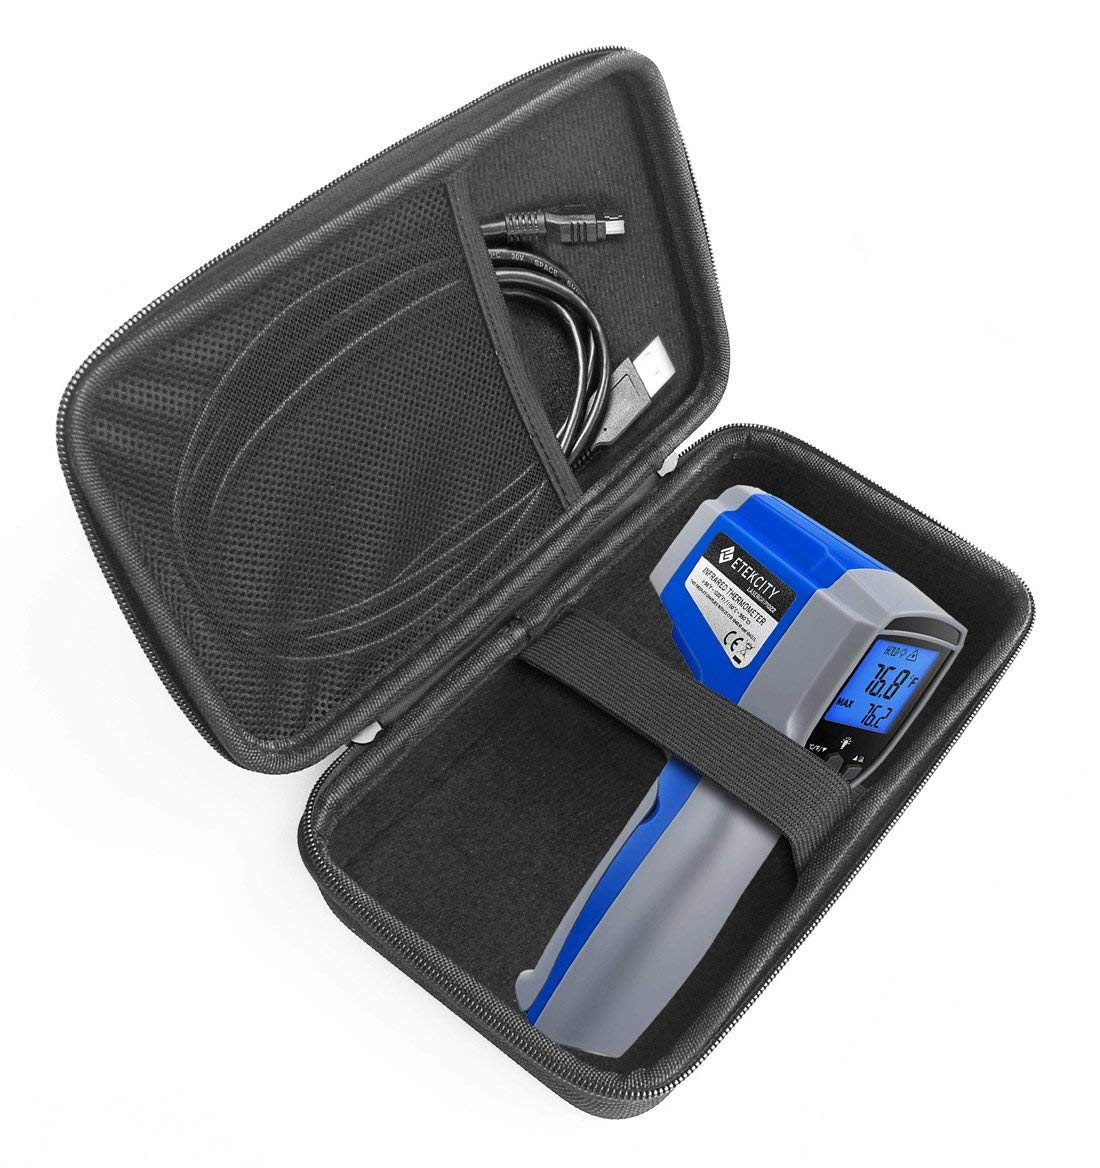 FitSand Hard Case for Etekcity 1022D Dual Laser Digital Infrared Thermometer Temperature Gun